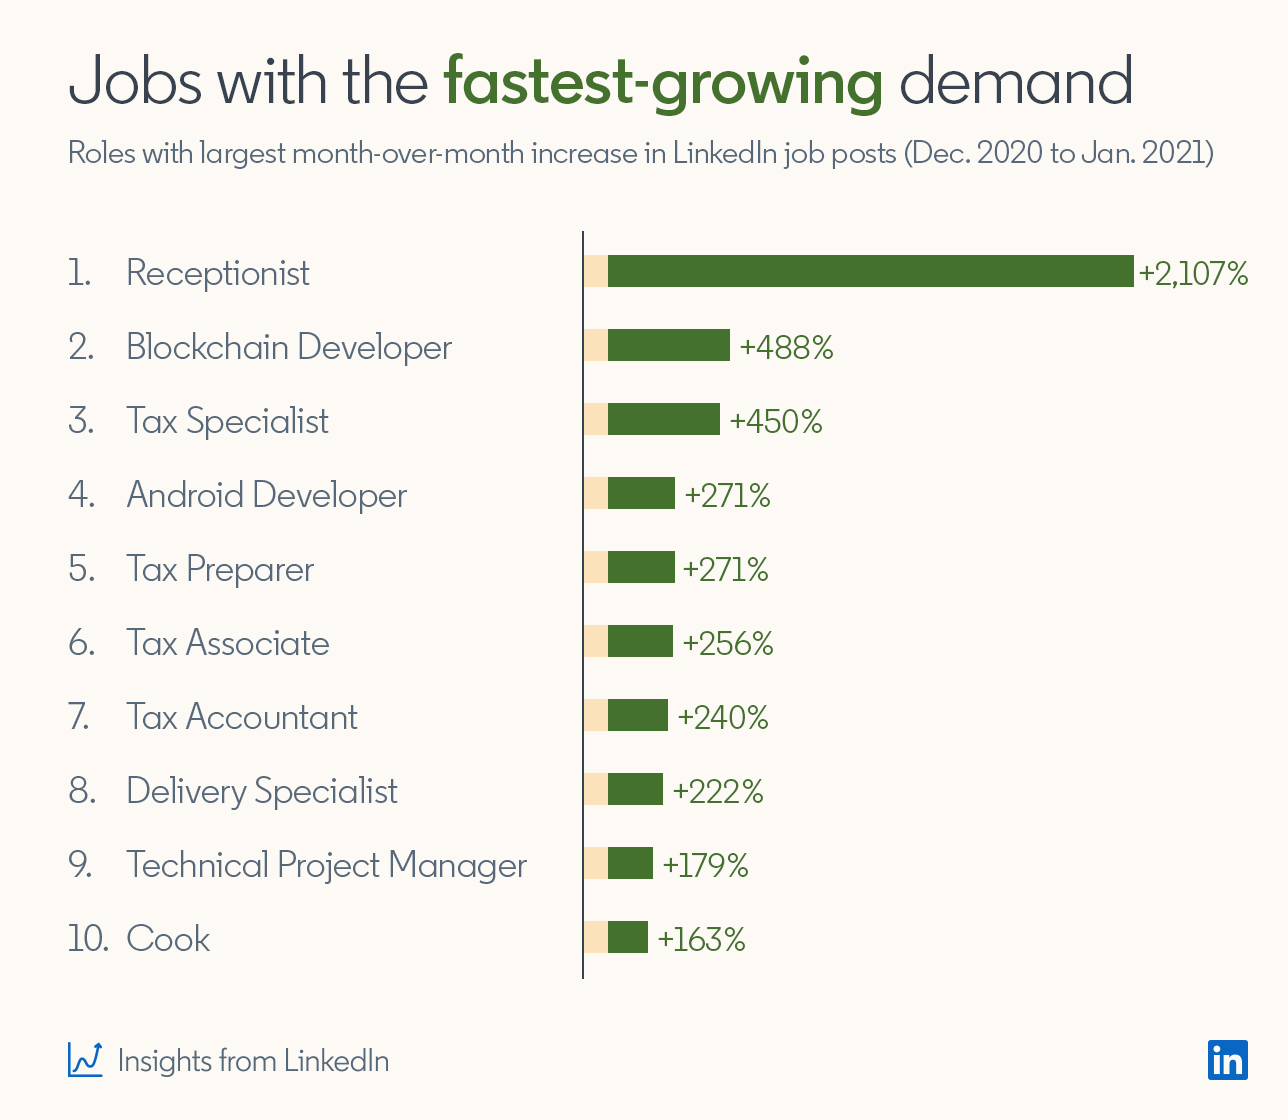 Jobs with the fastest-growing demand Roles with largest month-over-month increase in LinkedIn job posts (Dec. 2020 to Jan. 2021)  1. Receptionist +2,107% 2. Blockchain Developer +488% 3. Tax Specialist +450% 4. Android Developer +271% 5. Tax Preparer +271% 6. Tax Associate +256% 7. Tax Accountant +240% 8. Delivery Specialist +222% 9. Technical Project Manager +179% 10. Cook +163%  *Insights from LinkedIn